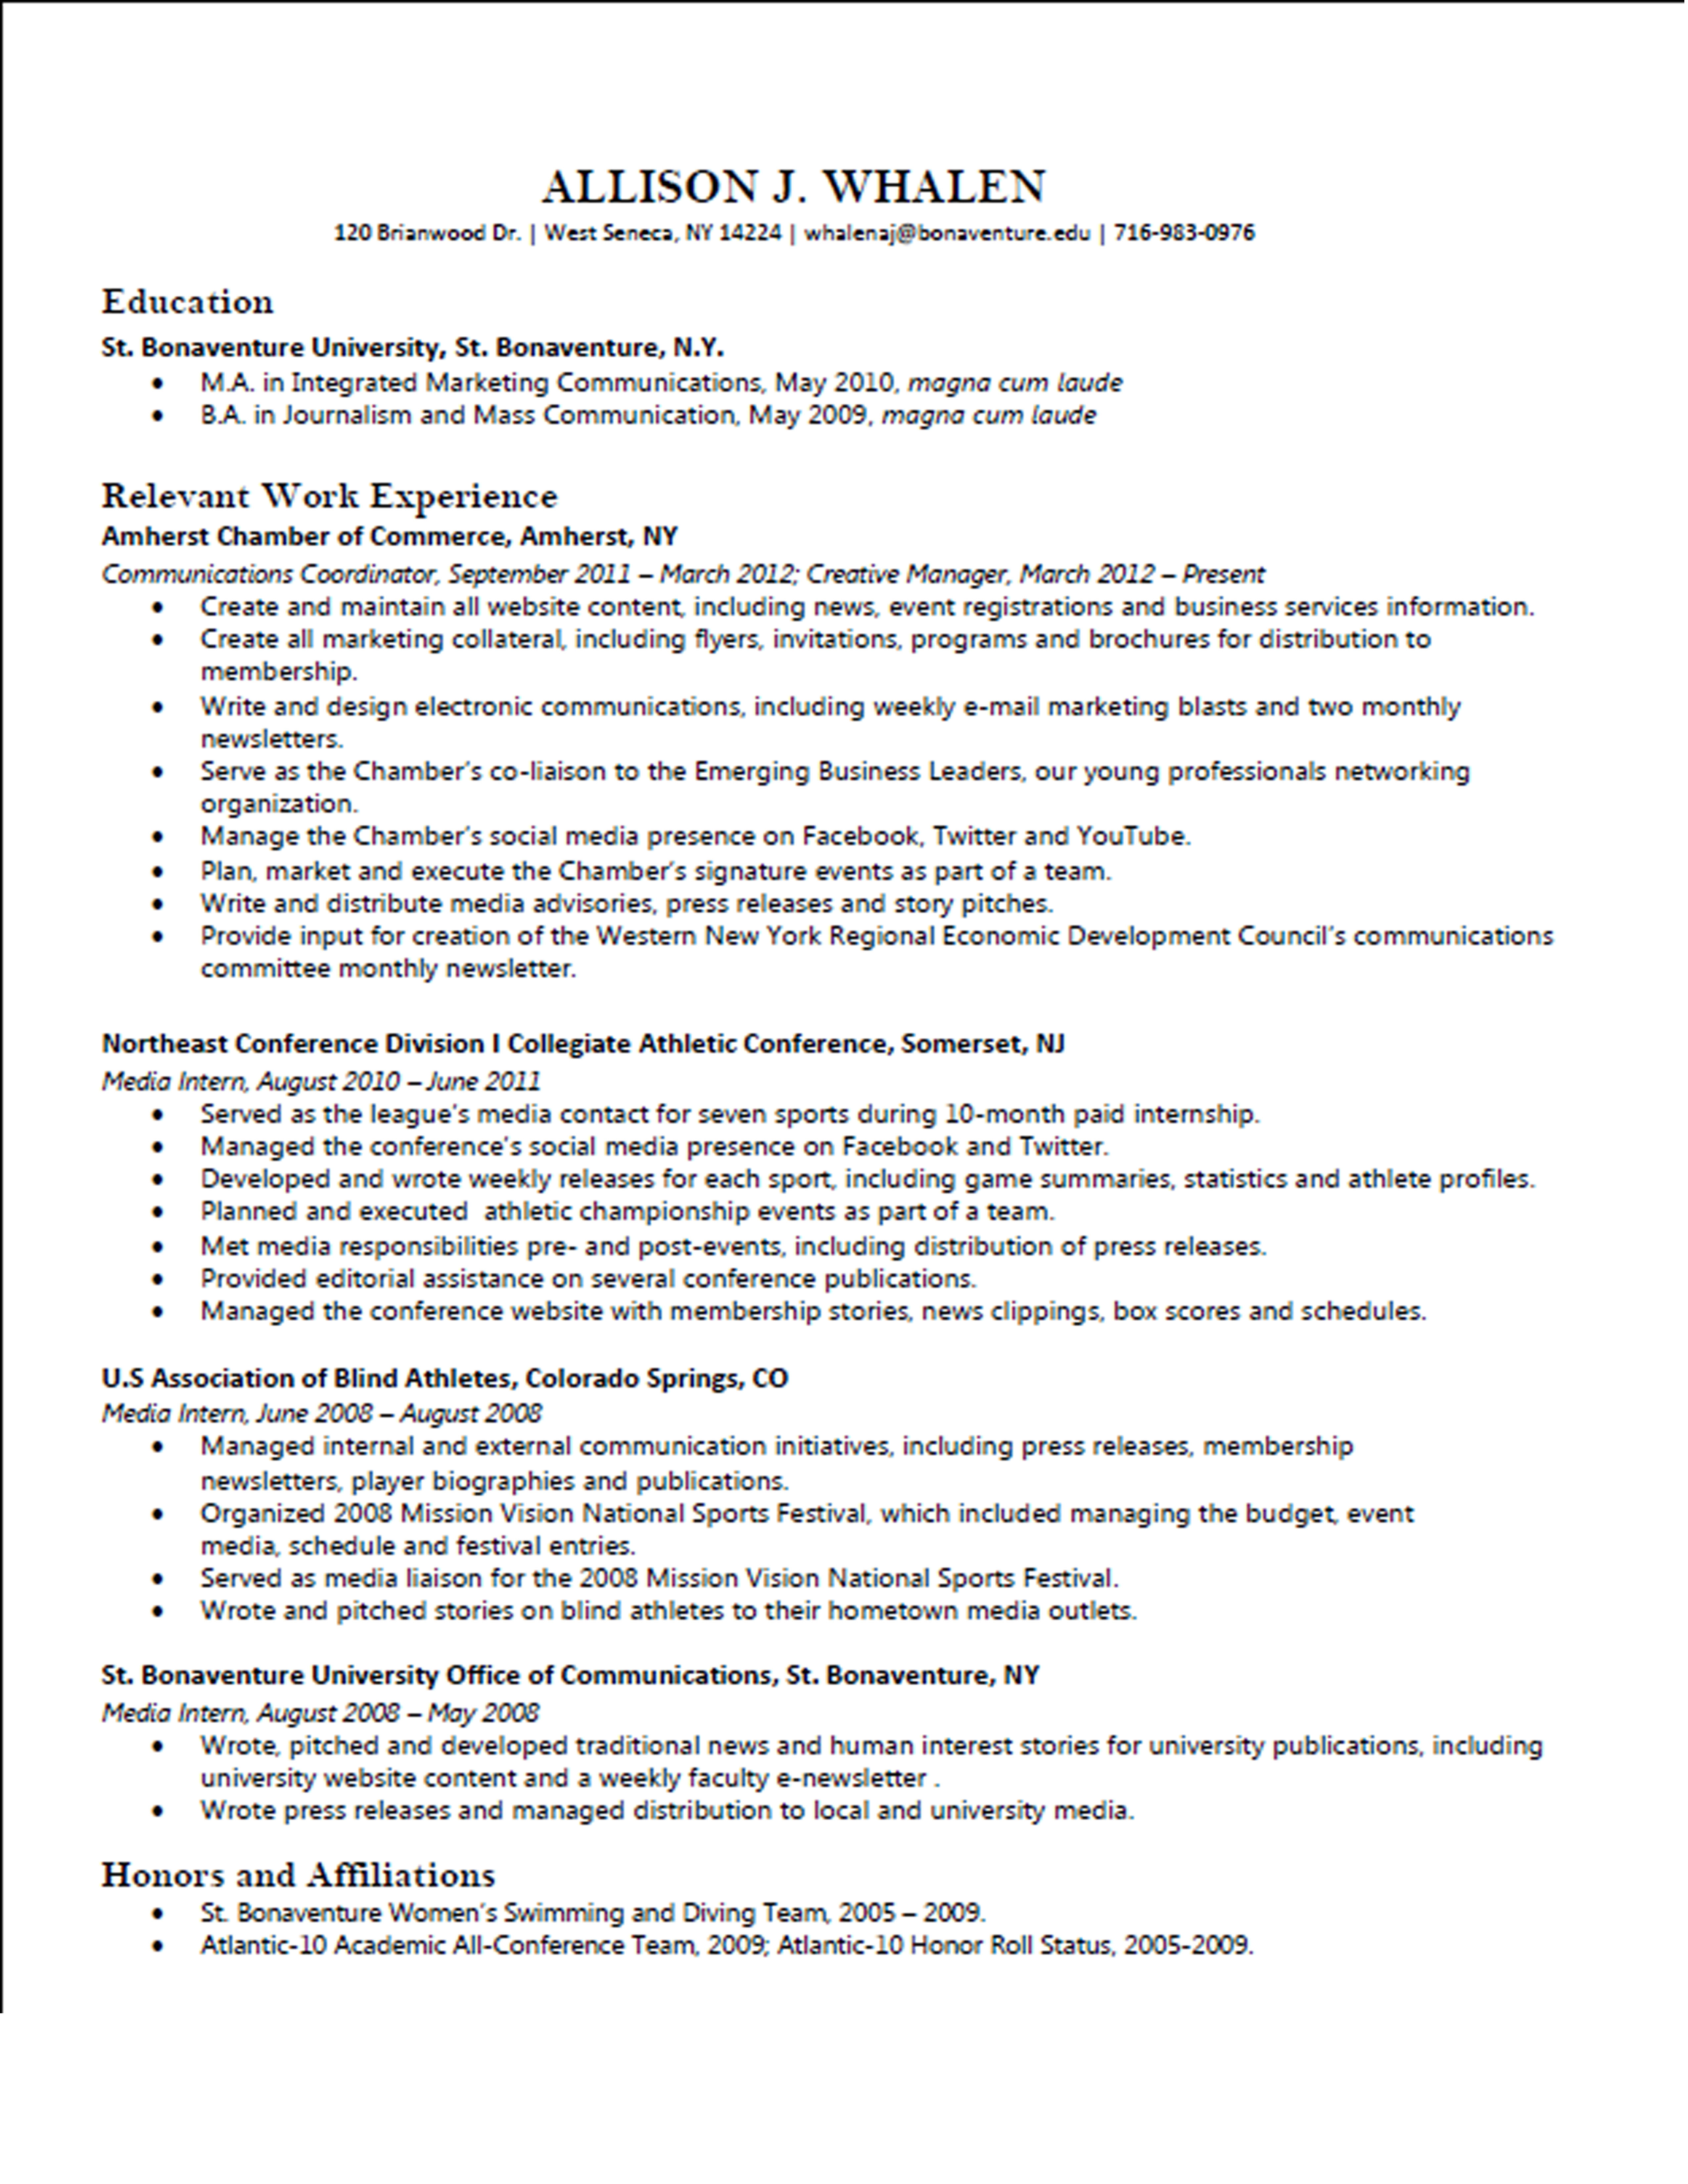 Rate my resume